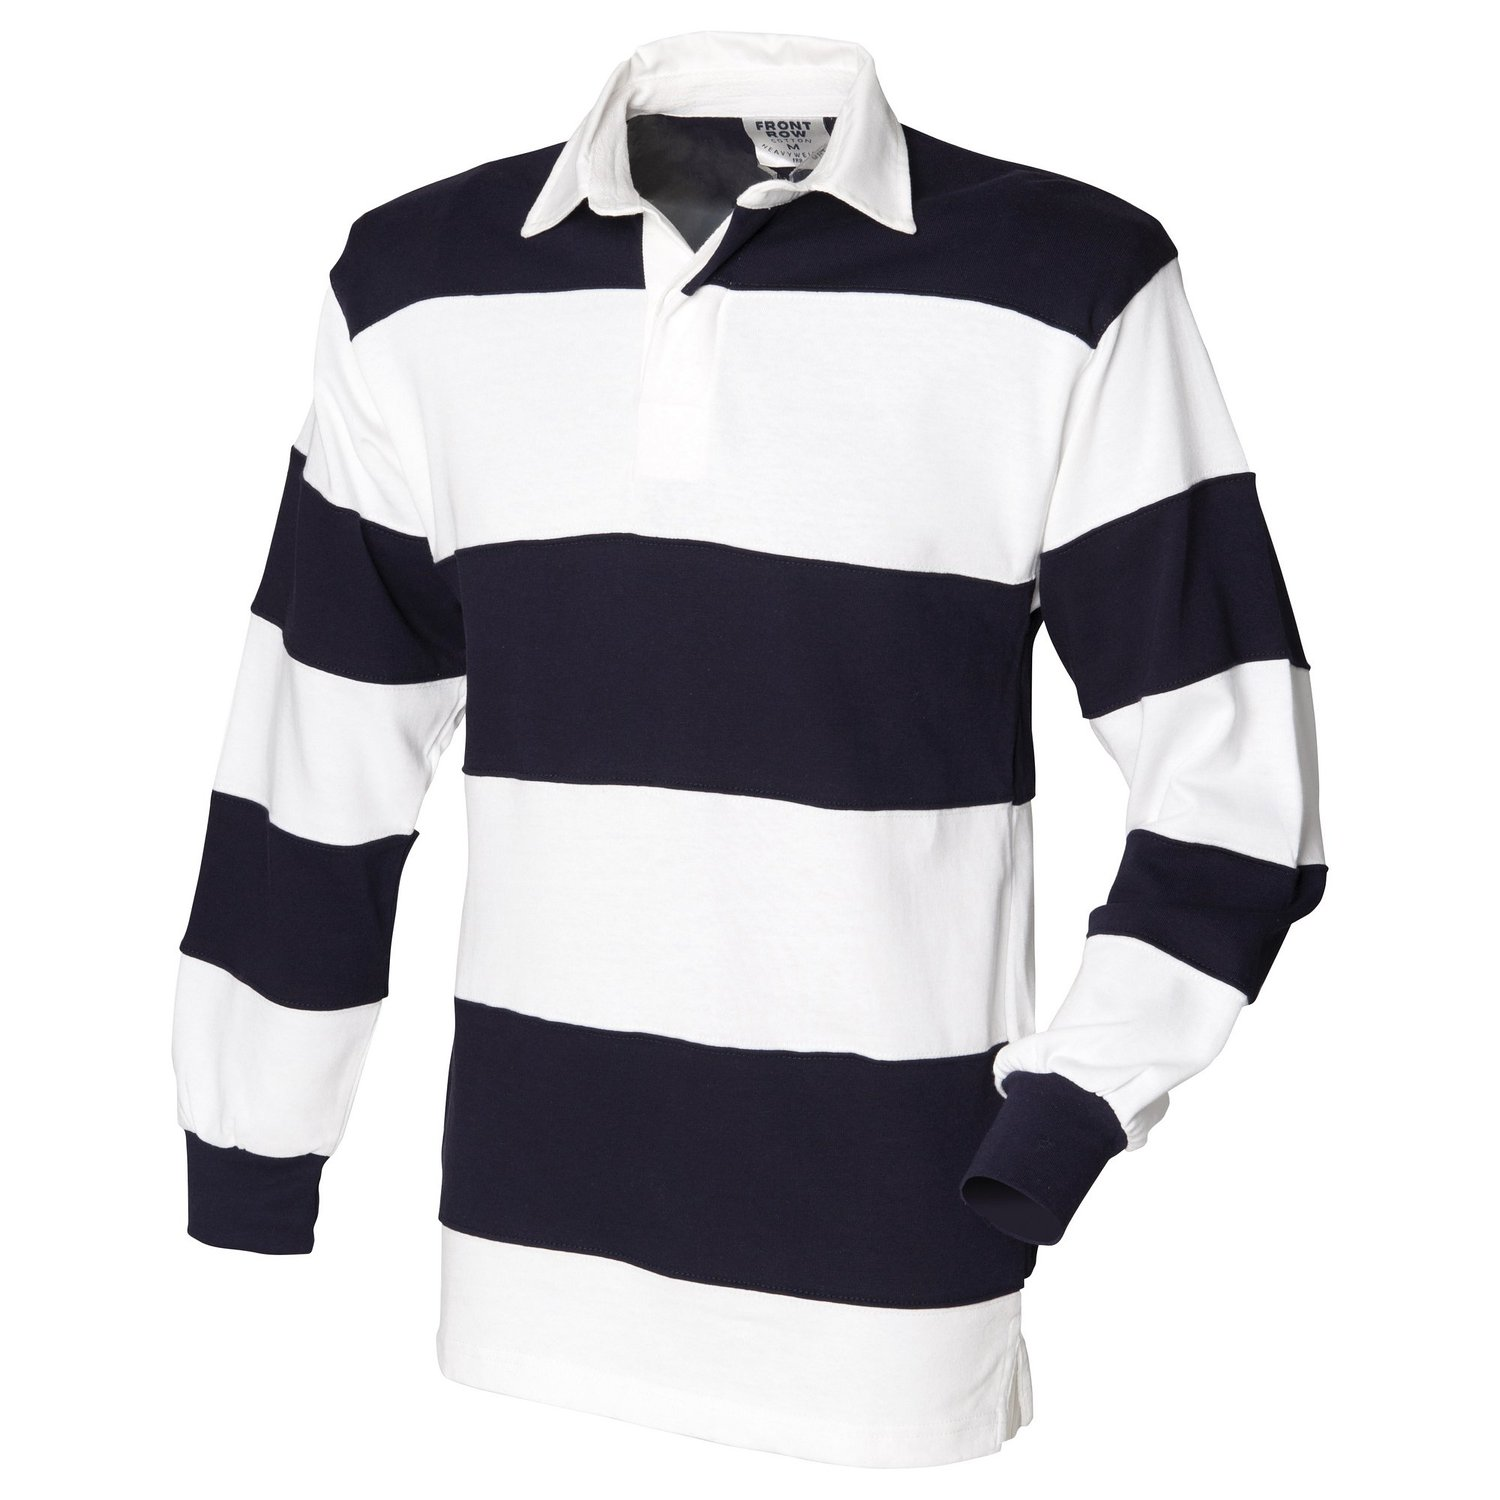 BOYS - PREMIUM - Unisex Polo Rugby L/S